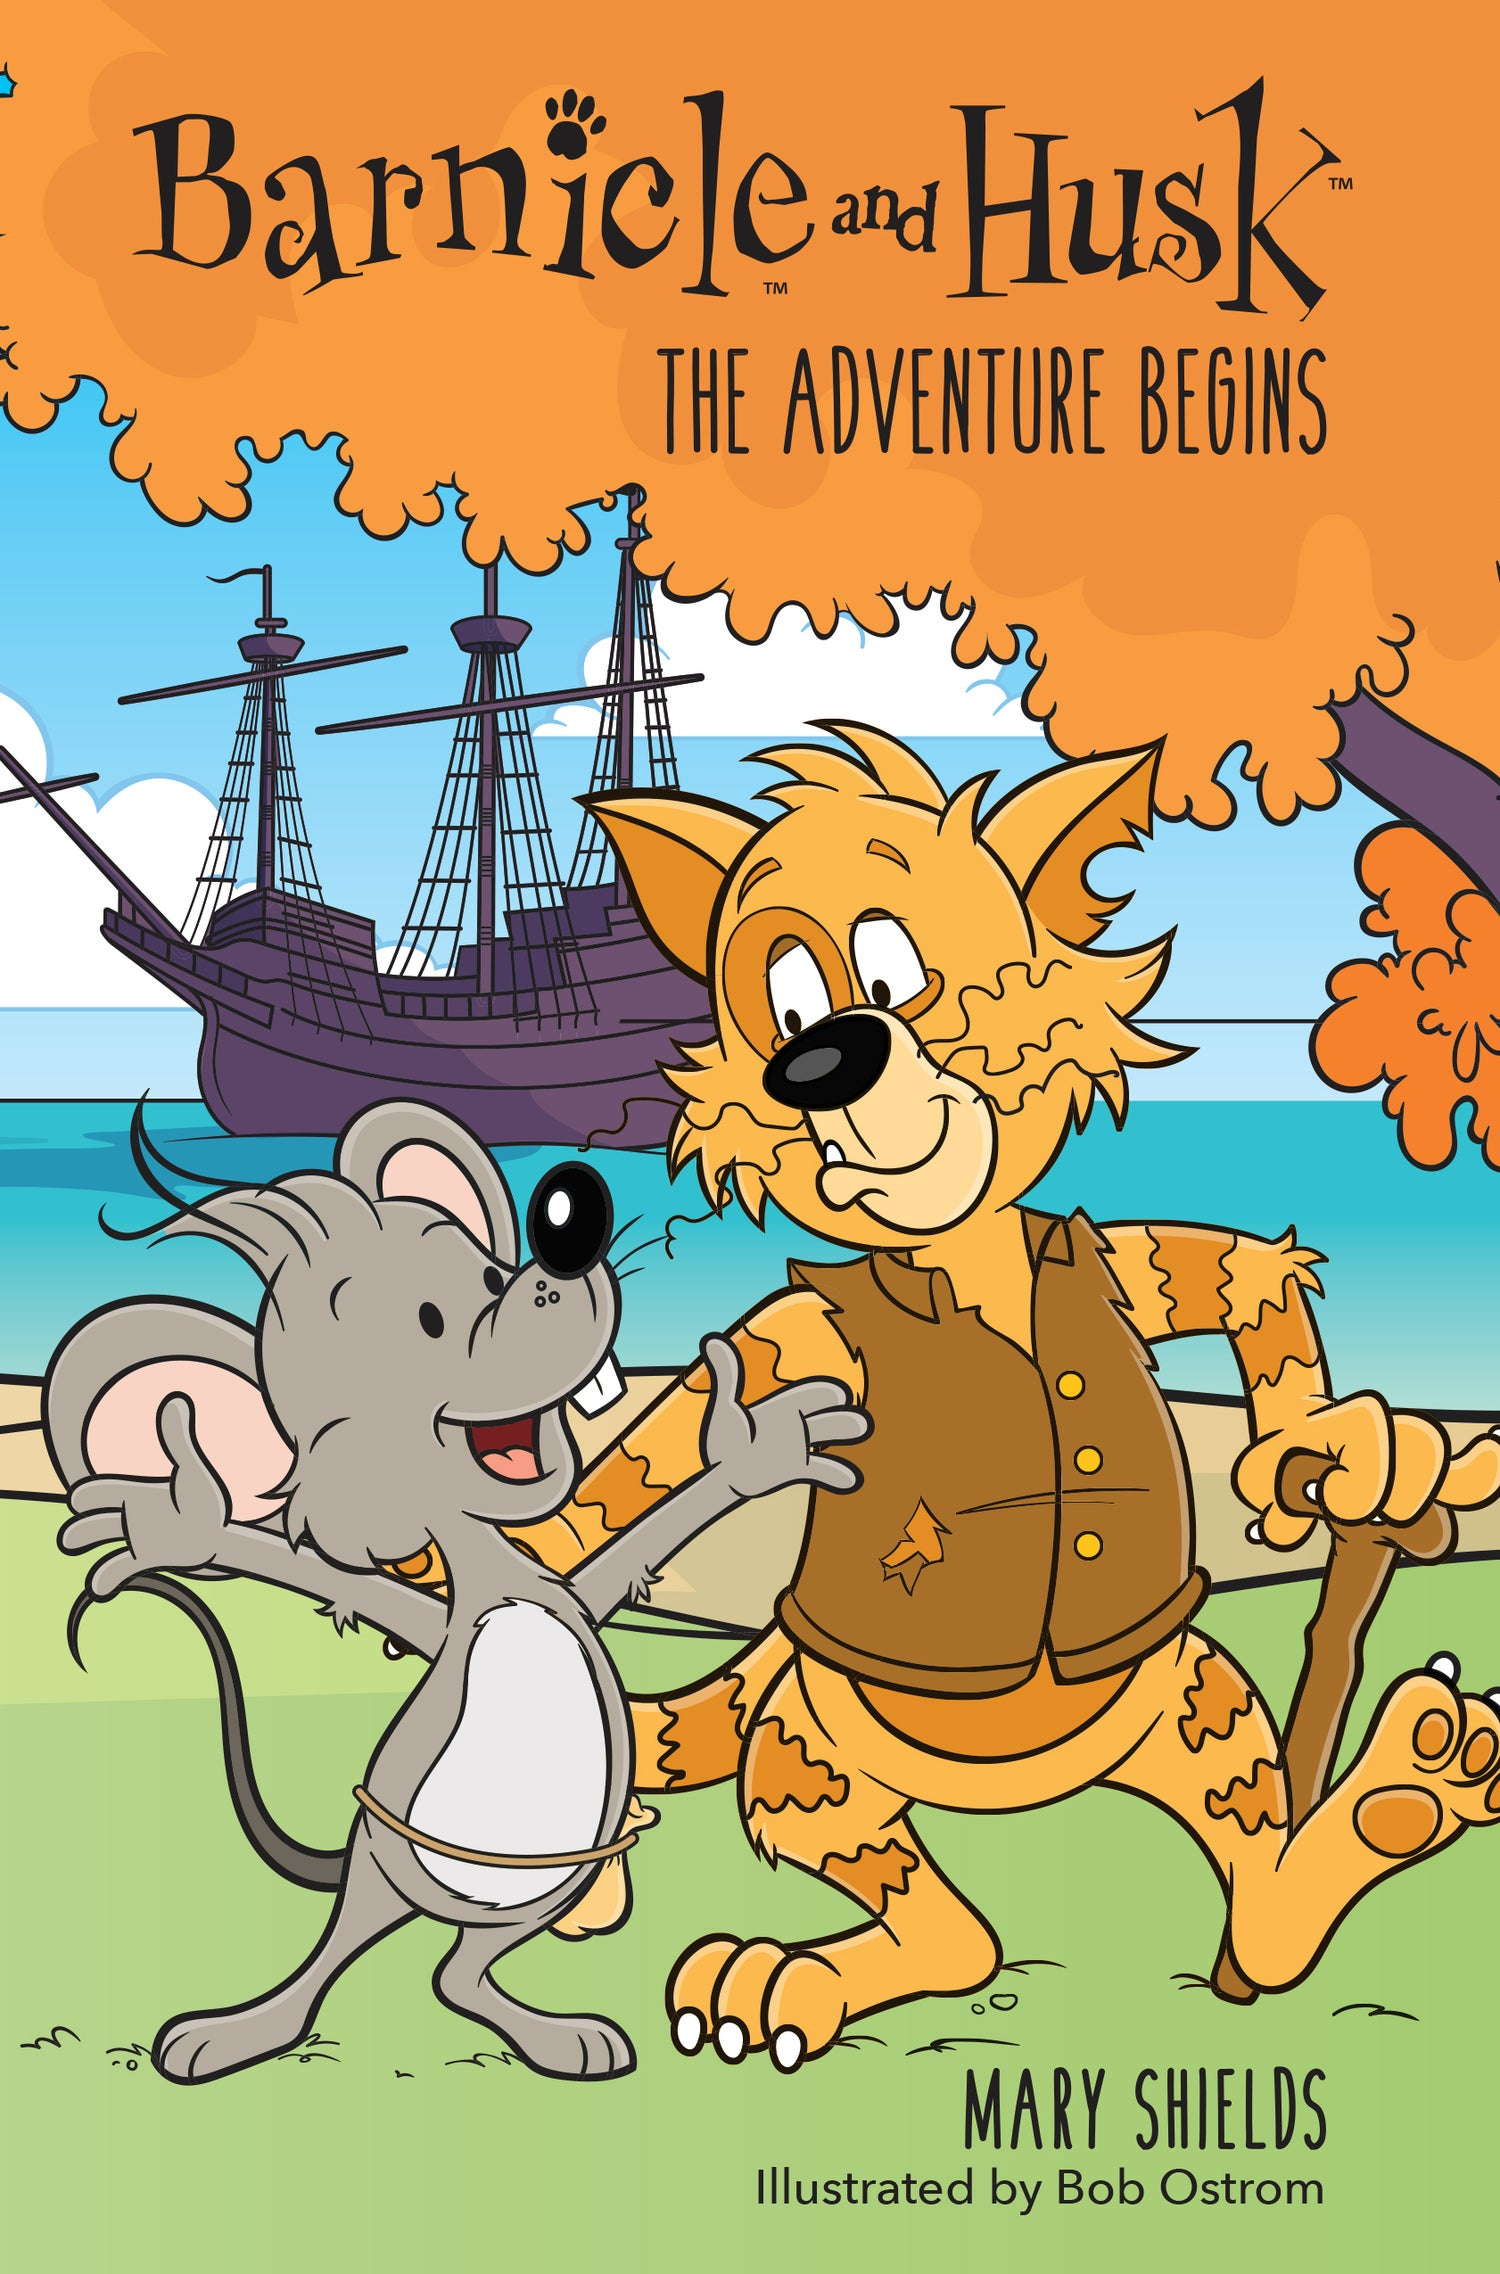 Image of Barnicle and Husk #1: The Adventure Begins, Digital Chapter Book